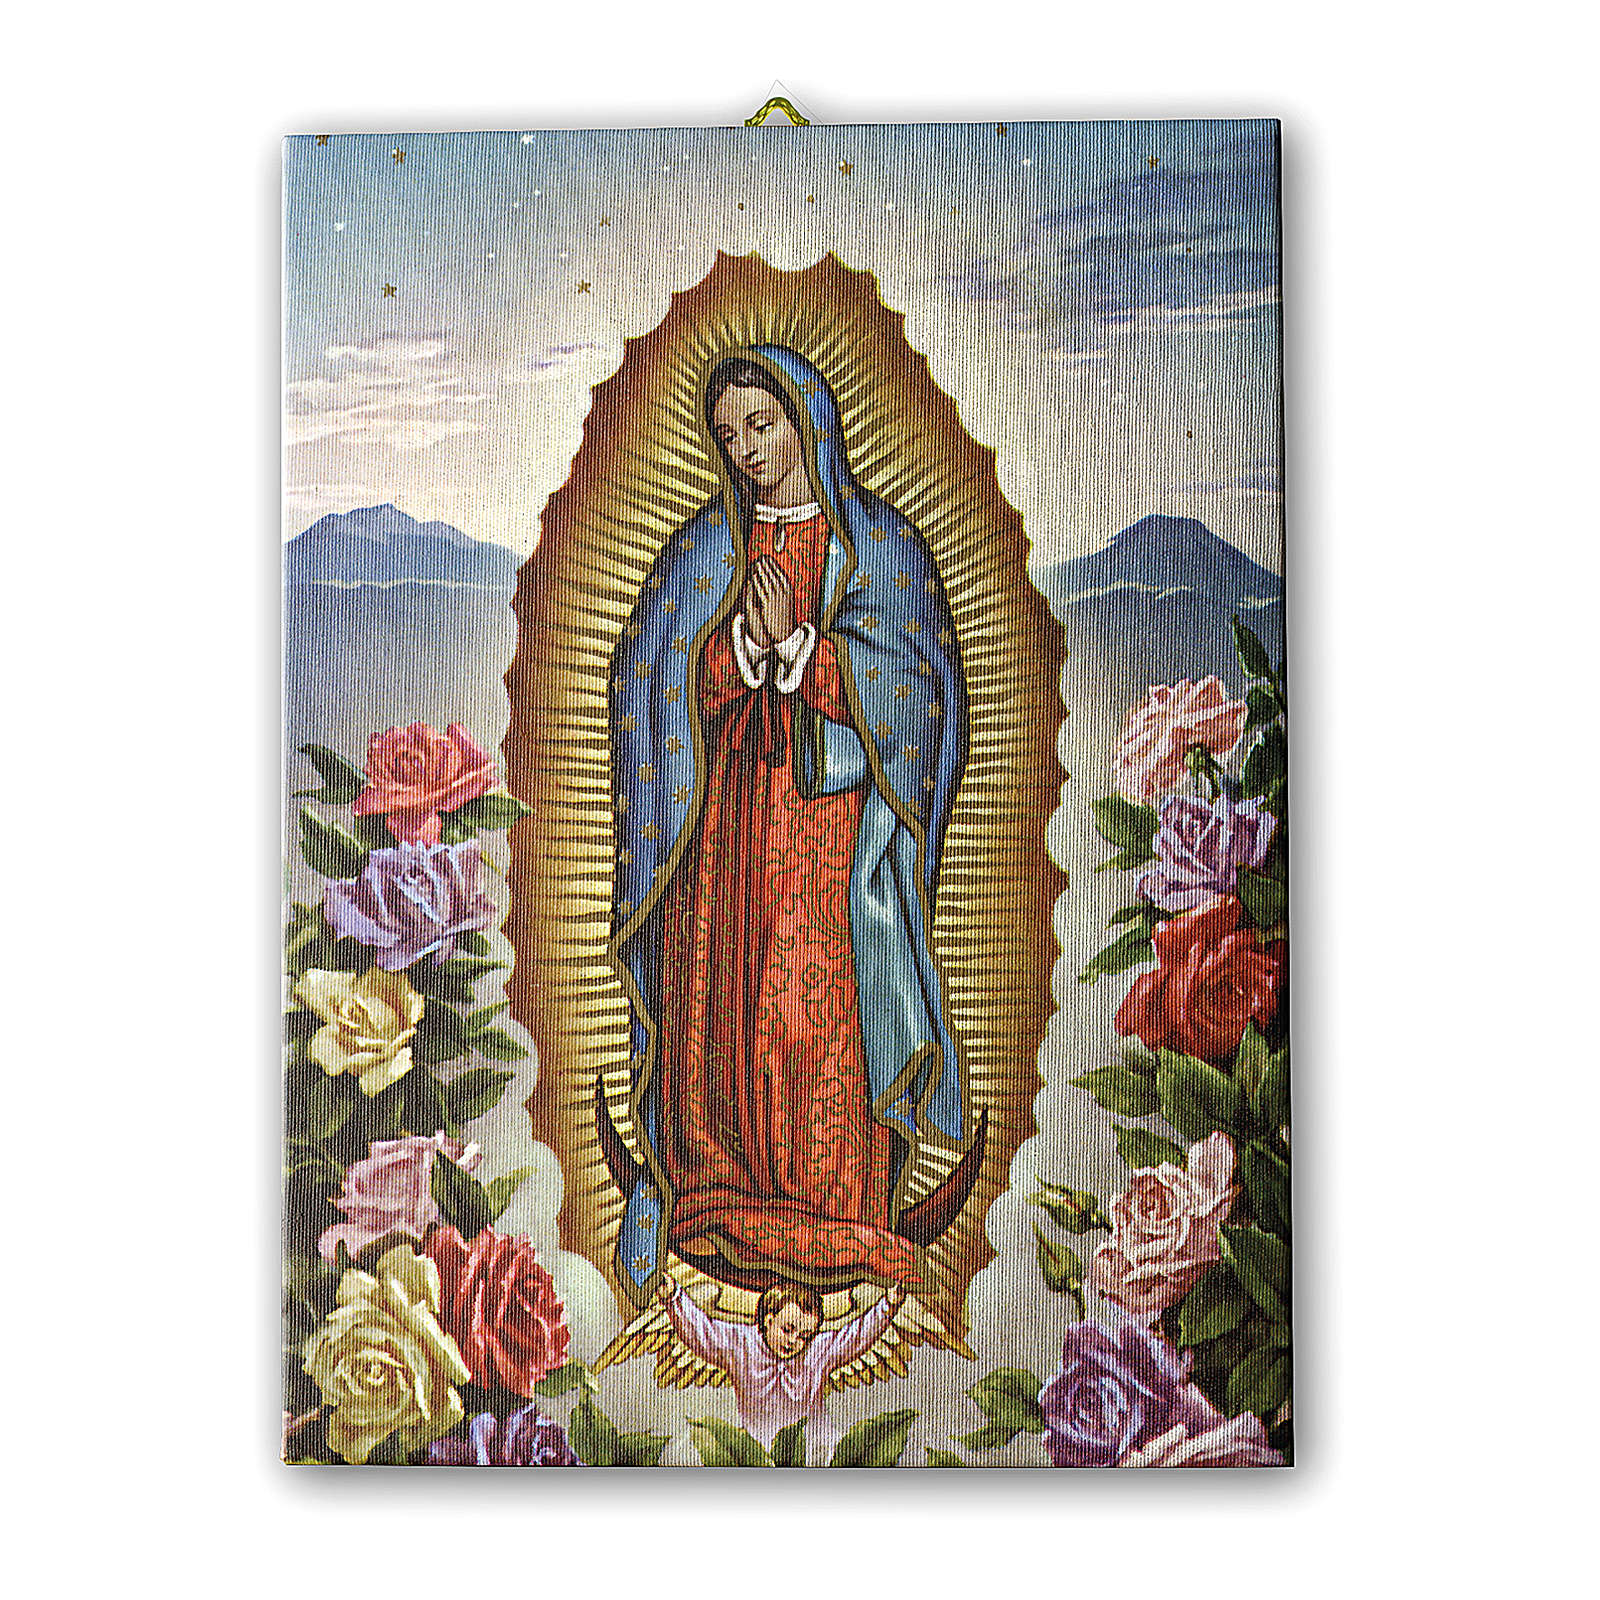 Painting on canvas Our Lady of Guadalupe 25x20 cm 3